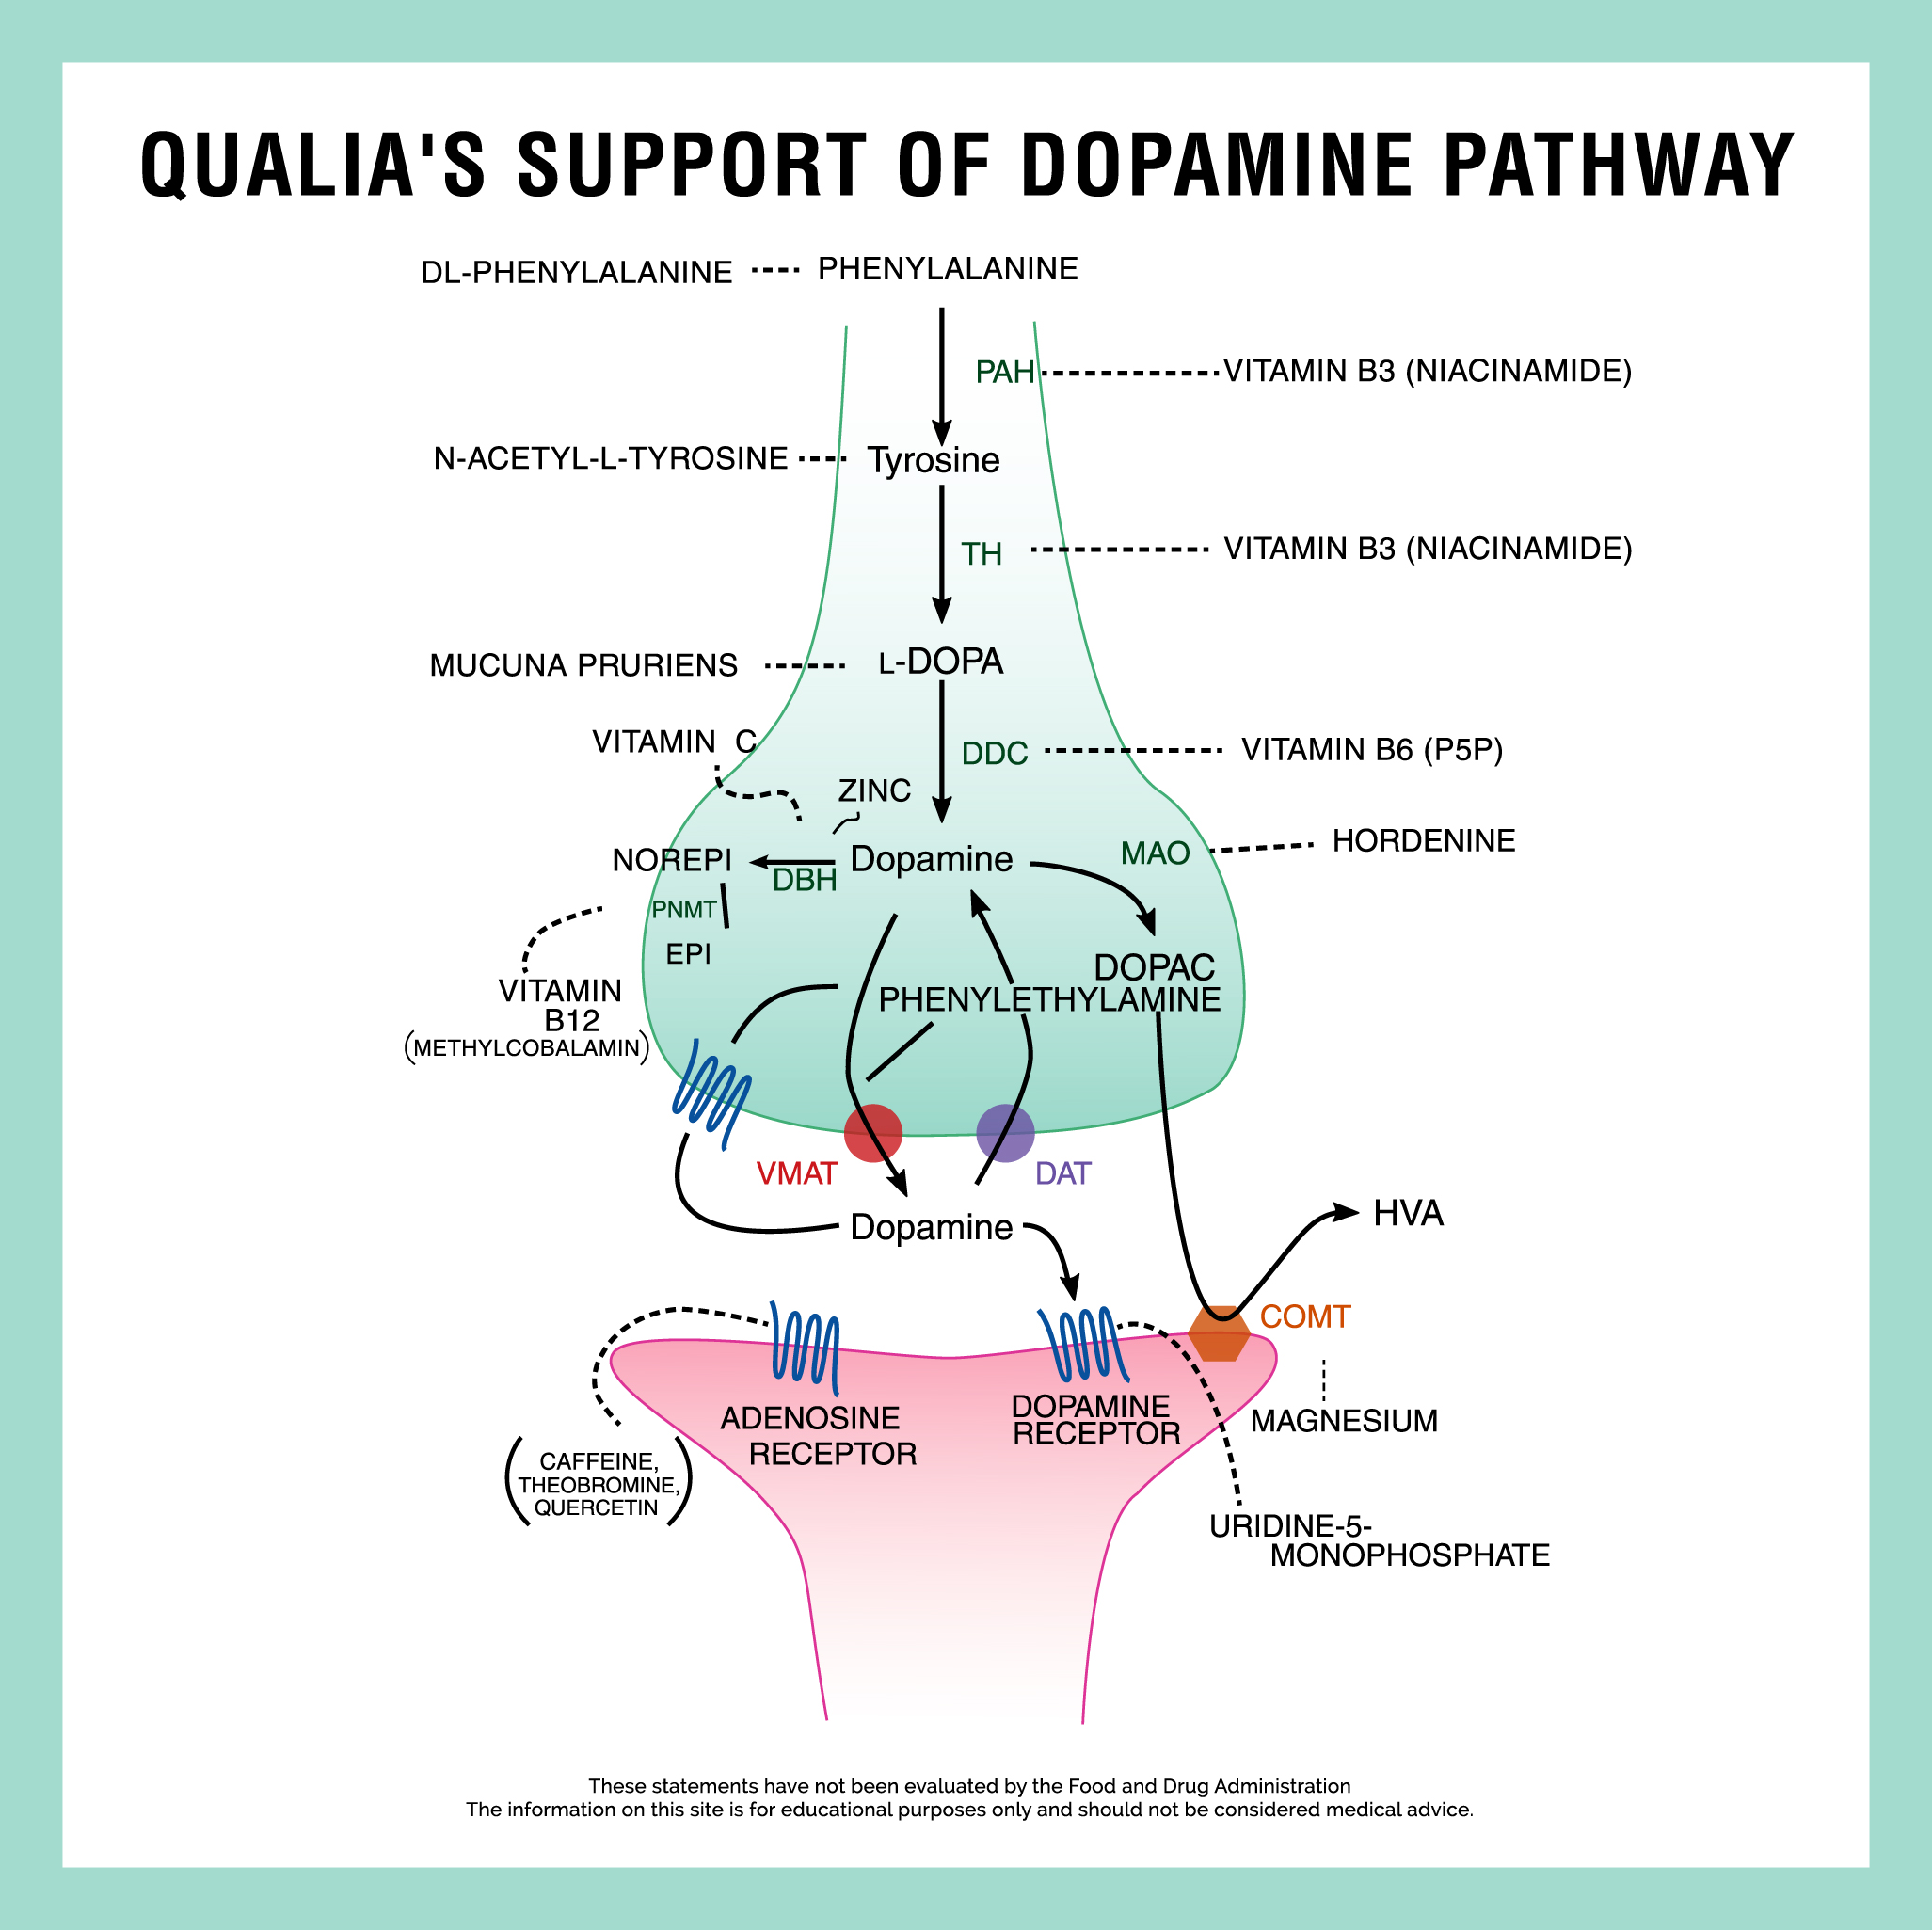 Qualia's support of the dopamine pathway